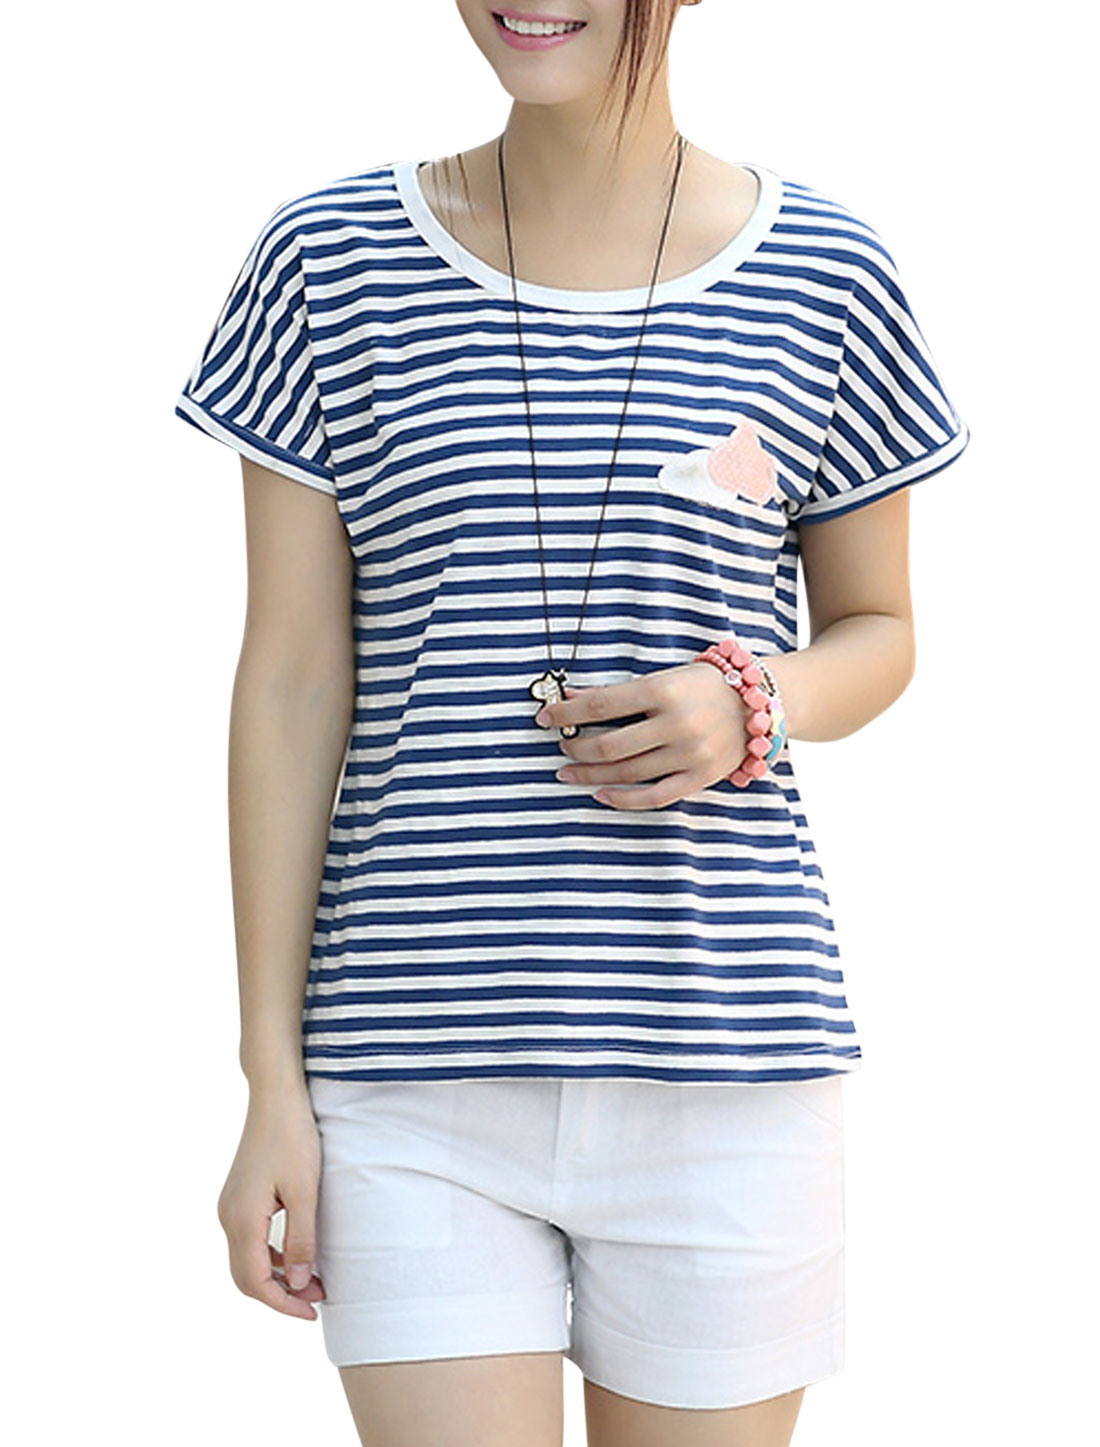 Ladies Soft Pullover Stripes Cloud Applique Loose Top Navy Blue White XS